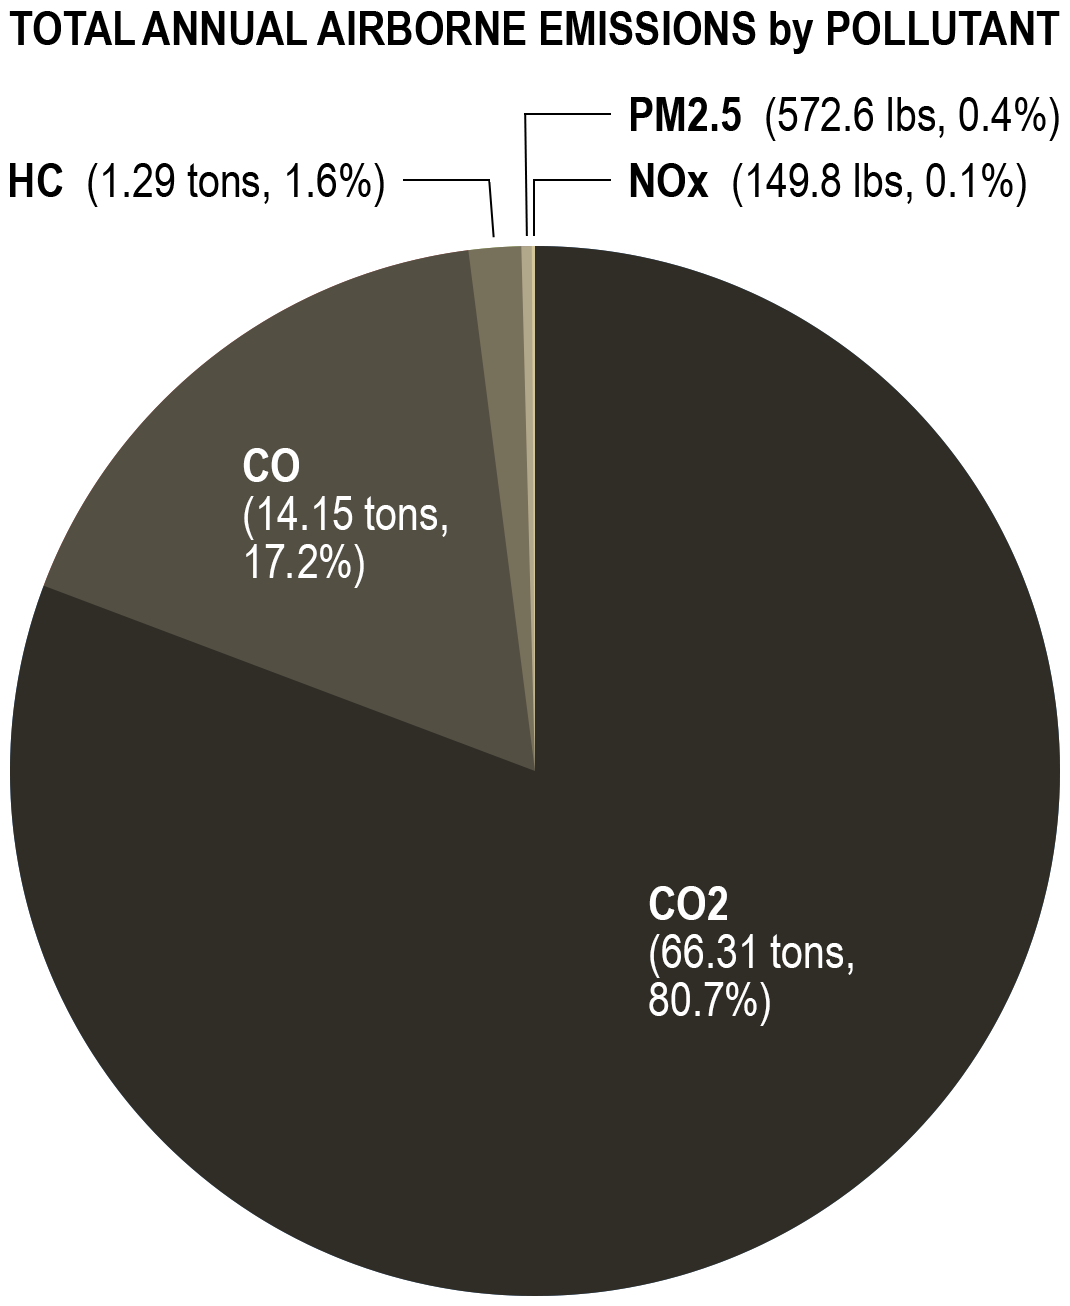 AGZA_GZ_Ojai_Pie_Charts_01_Emissions_1070.png